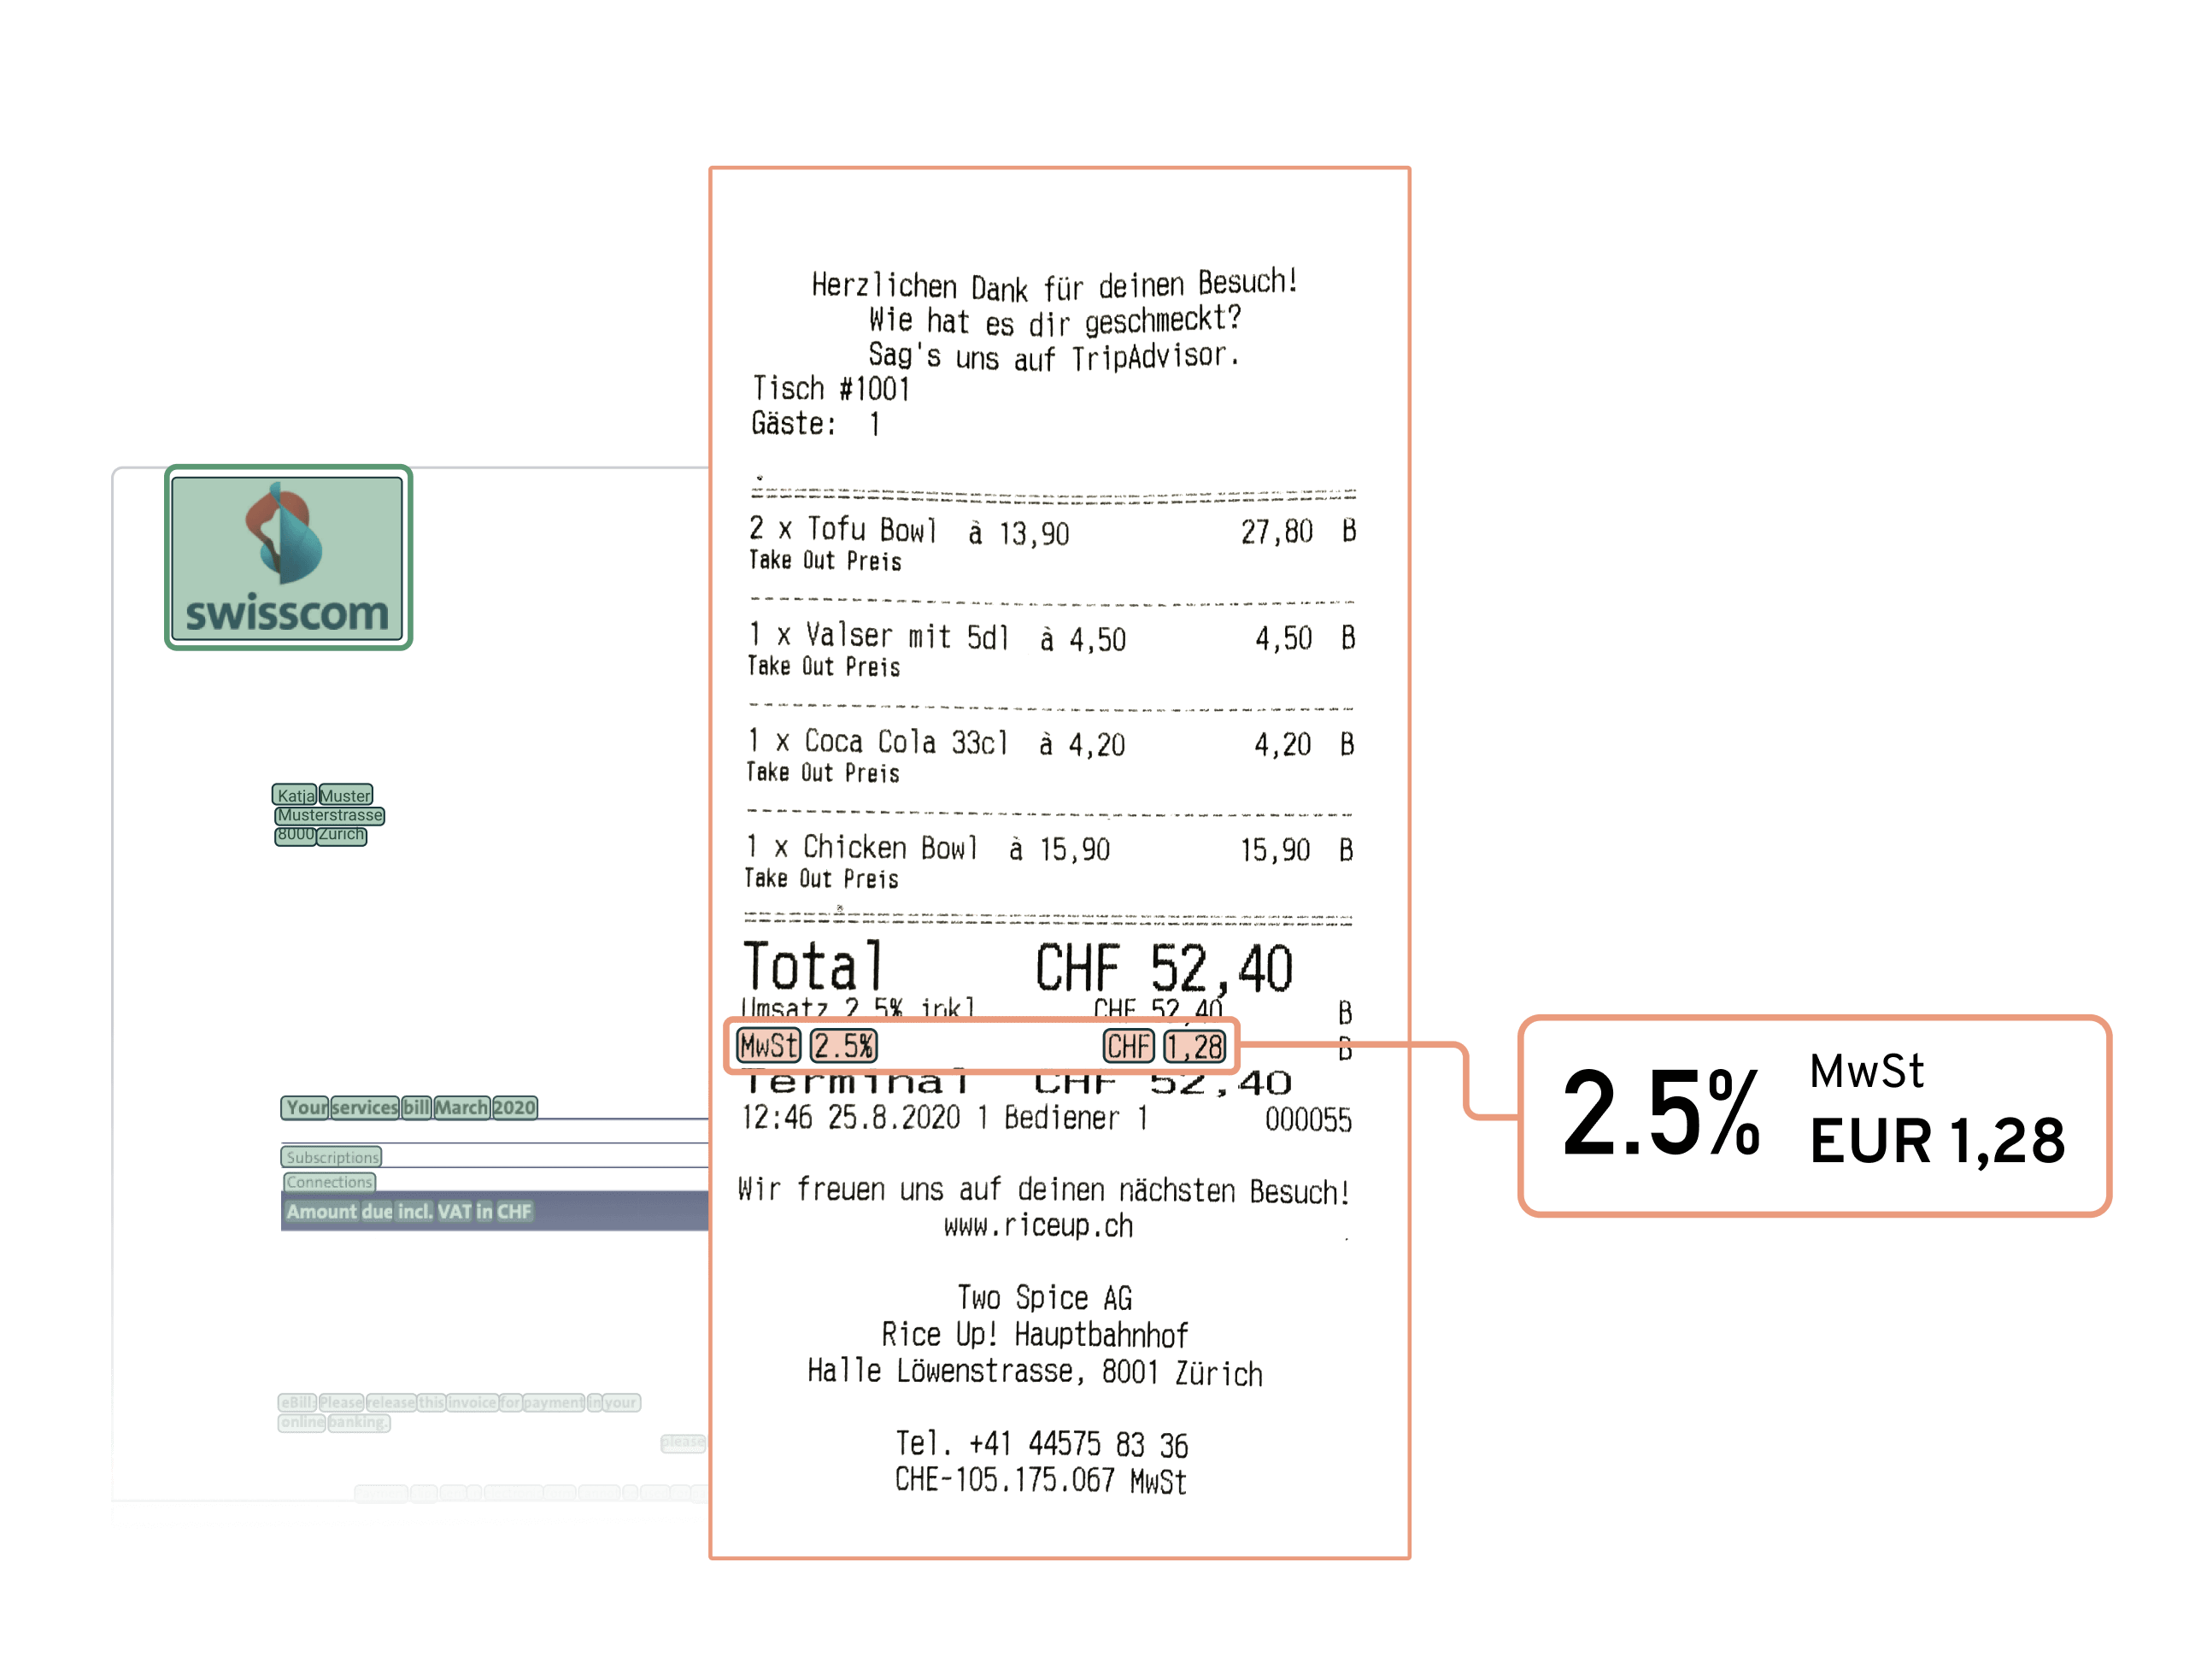 A receipt with MwSt highlighted with an invoice at the background